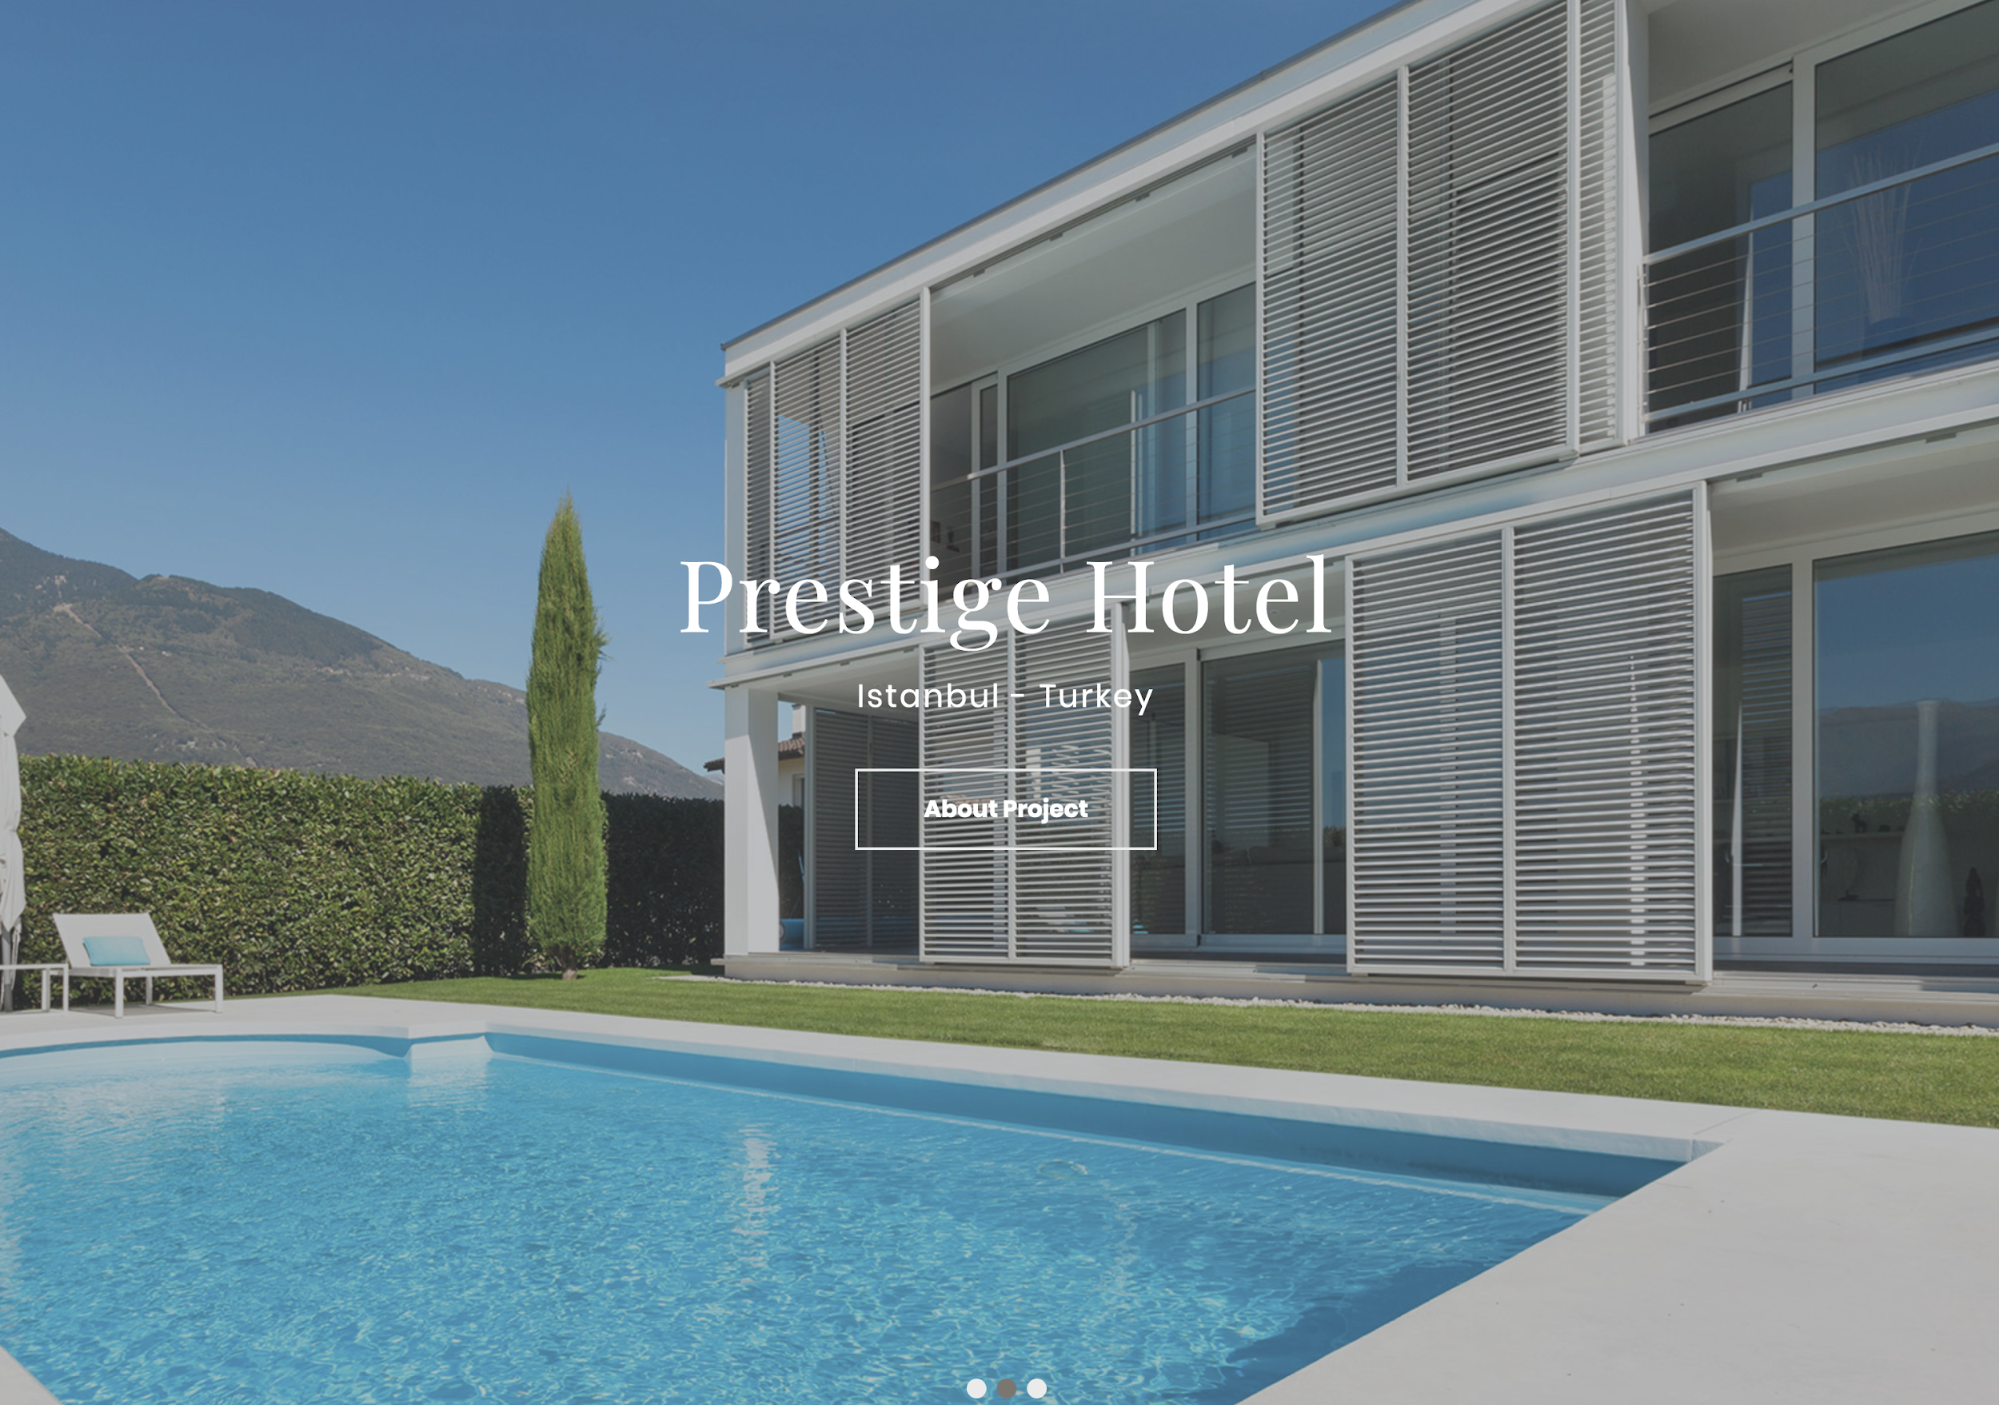 Creating a Hotel Website Slider